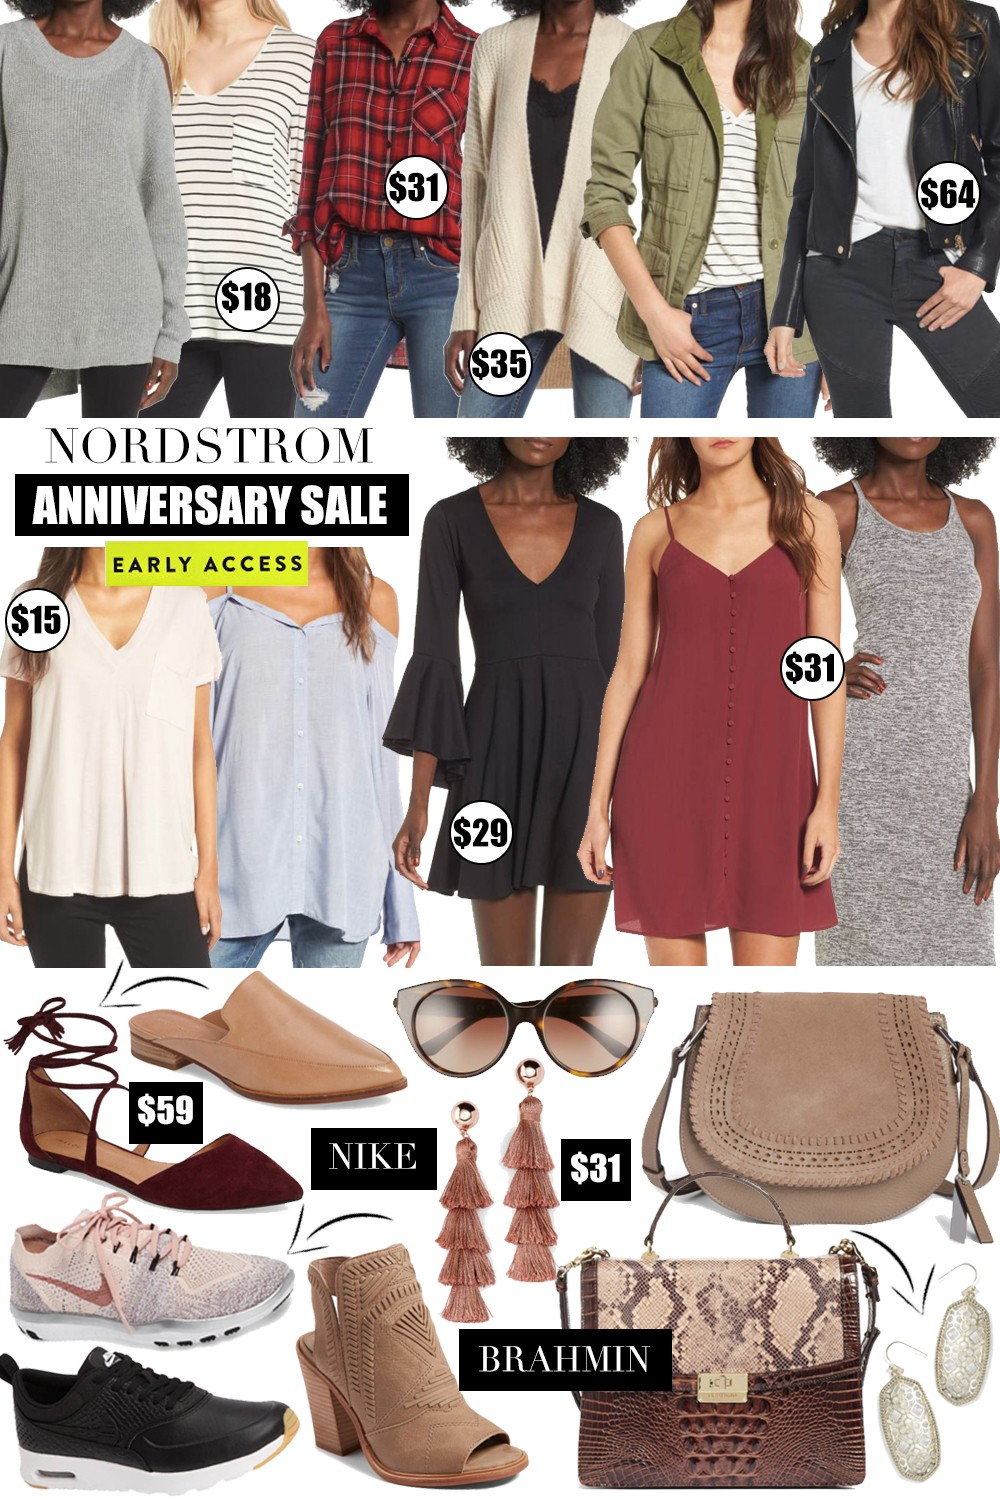 ab825e7b4bd97 Happy Nordstrom Anniversary Sale! Today is the first day of Early Access  (which means only Nordstrom credit debit card holders have access to all  the new ...